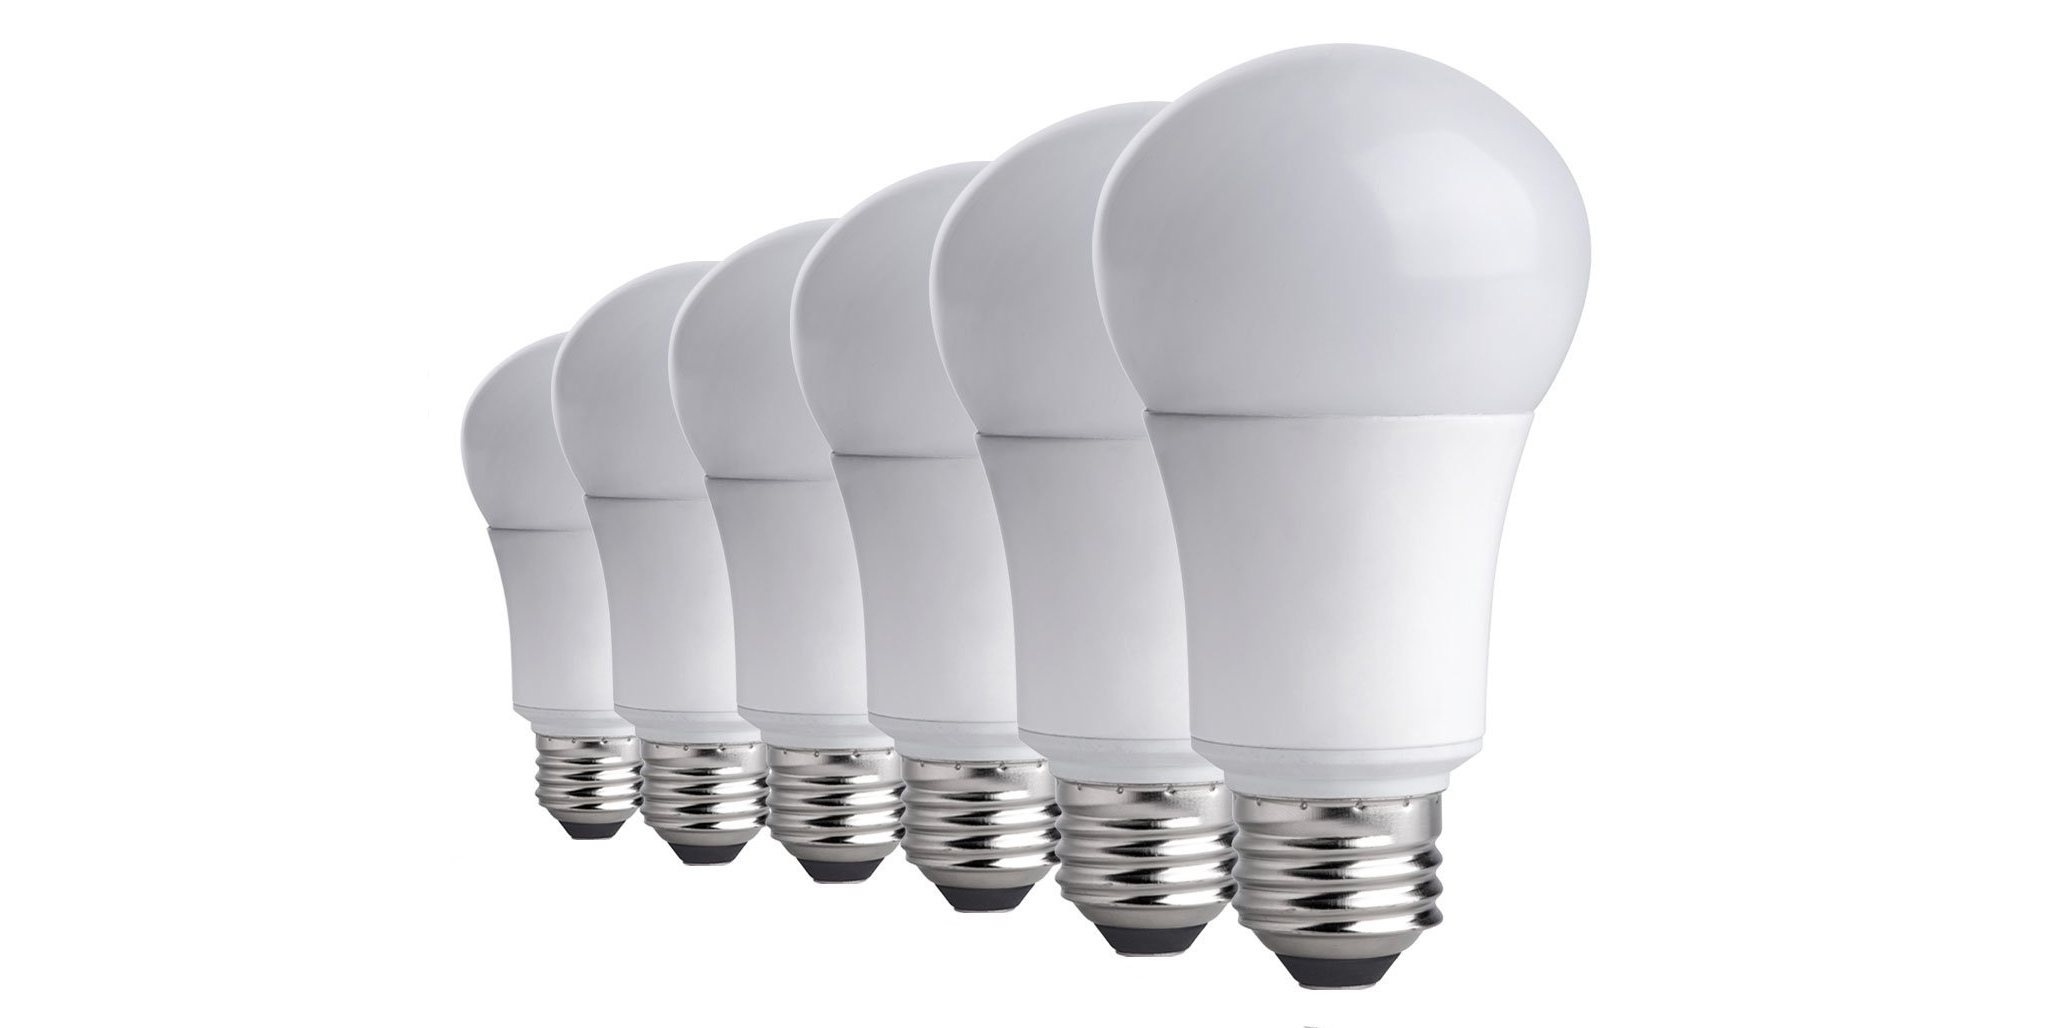 Green Deals 6-pack TCP 9W A19 LED Light Bulbs $10 Prime shipped more  sc 1 st  Electrek & Green Deals: 6-pack TCP 9W A19 LED Light Bulbs $10 Prime shipped ...